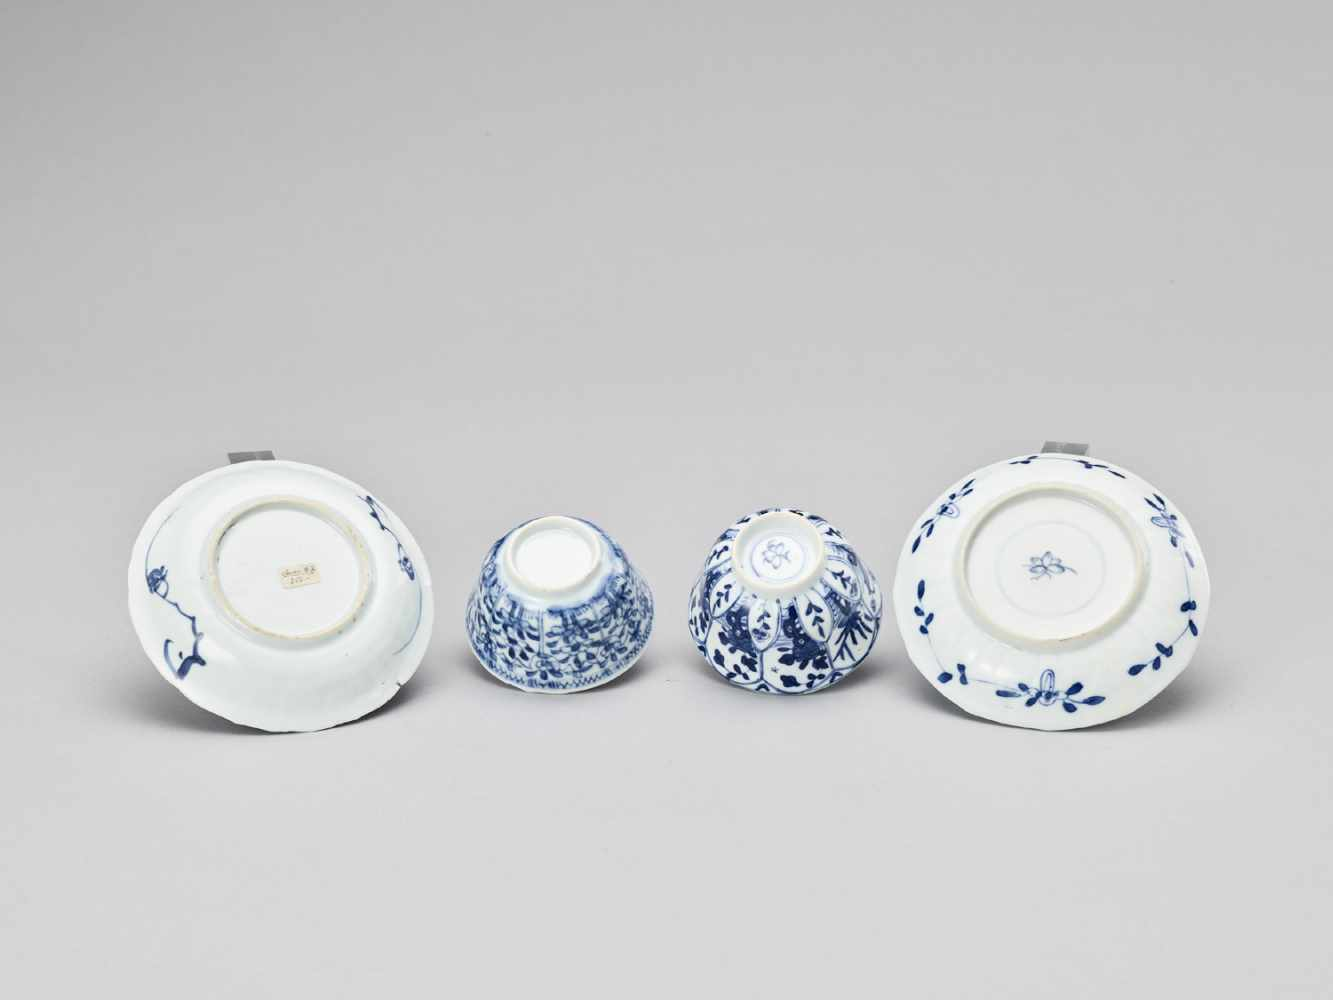 A PAIR OF BLUE AND WHITE PORCELAIN CUPS WITH MATCHING PLATES, KANGXI - Bild 6 aus 9